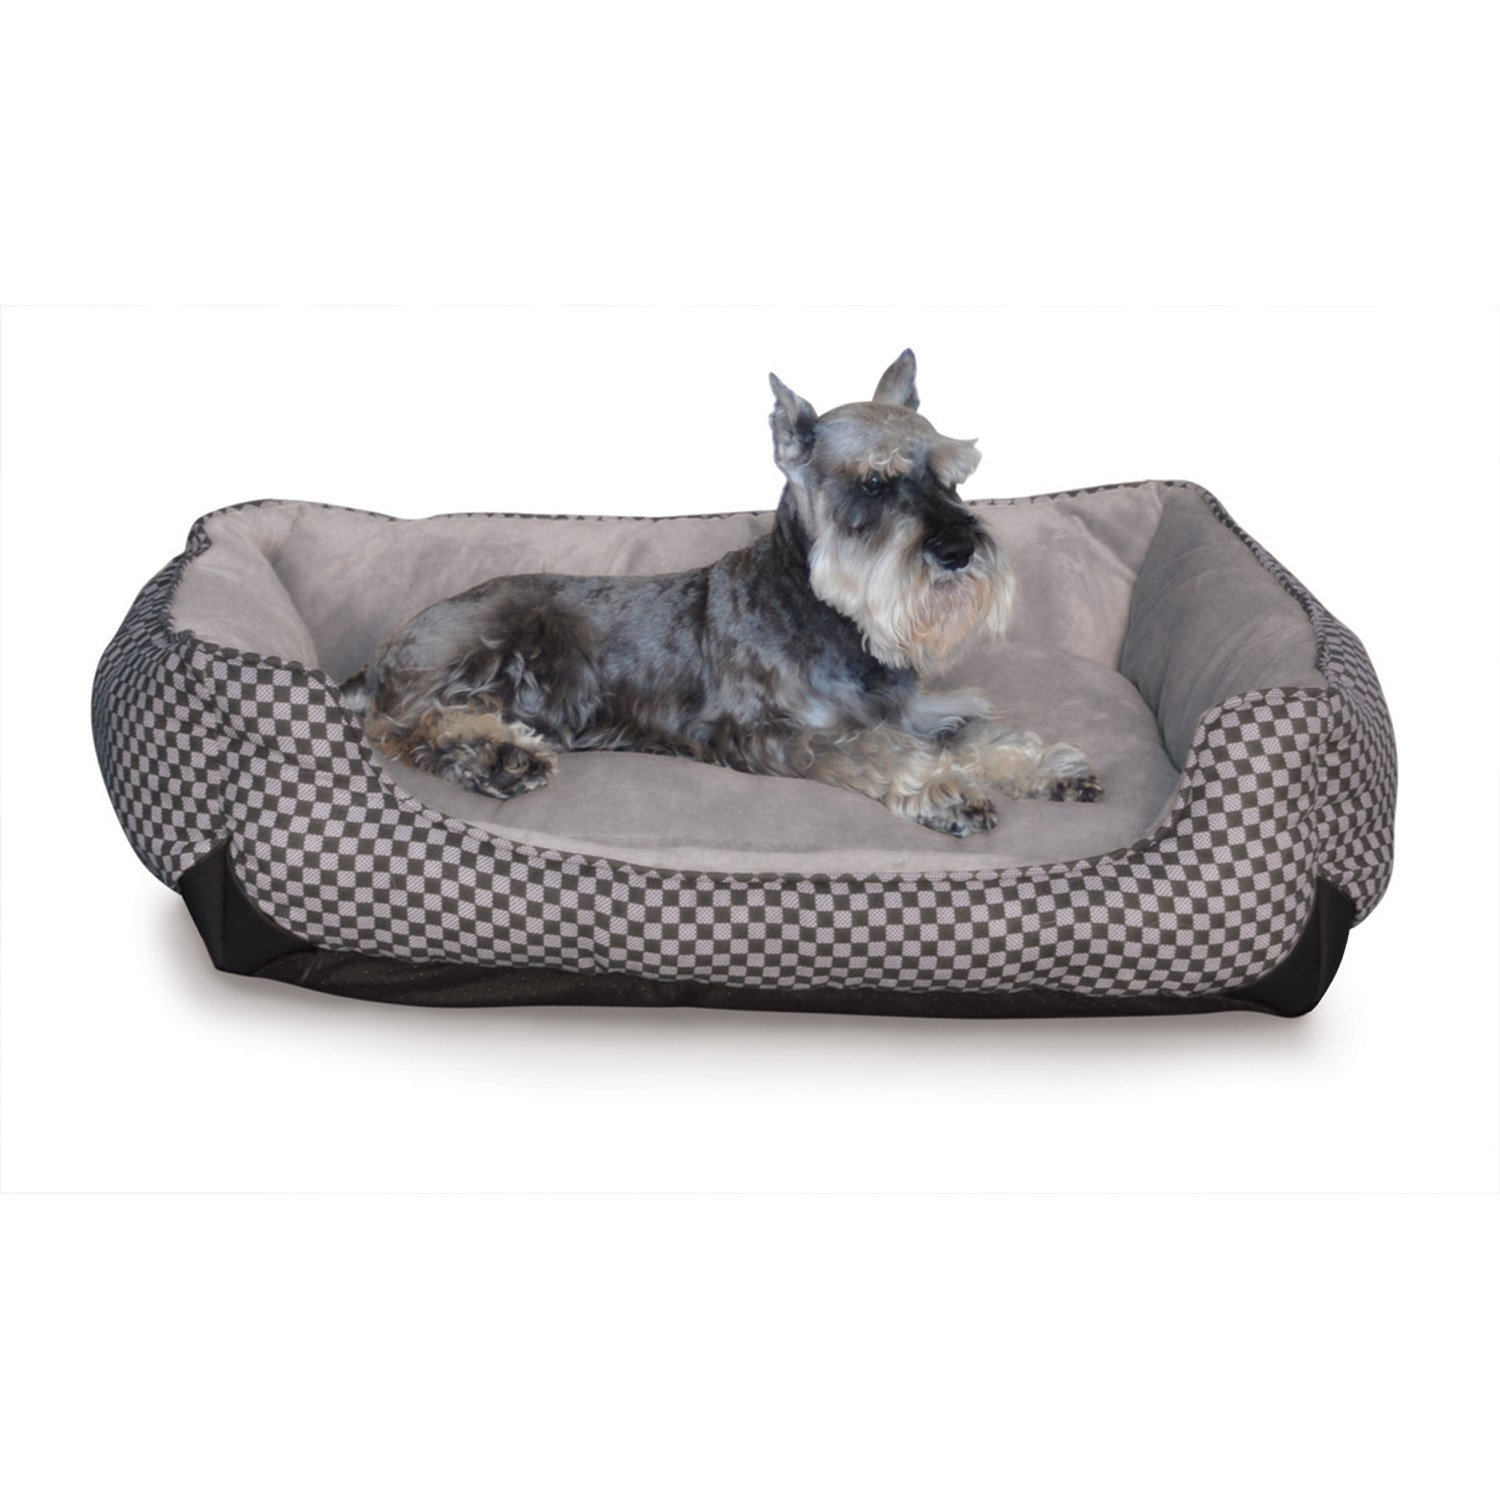 heated beds rd bed pur dog kaos db